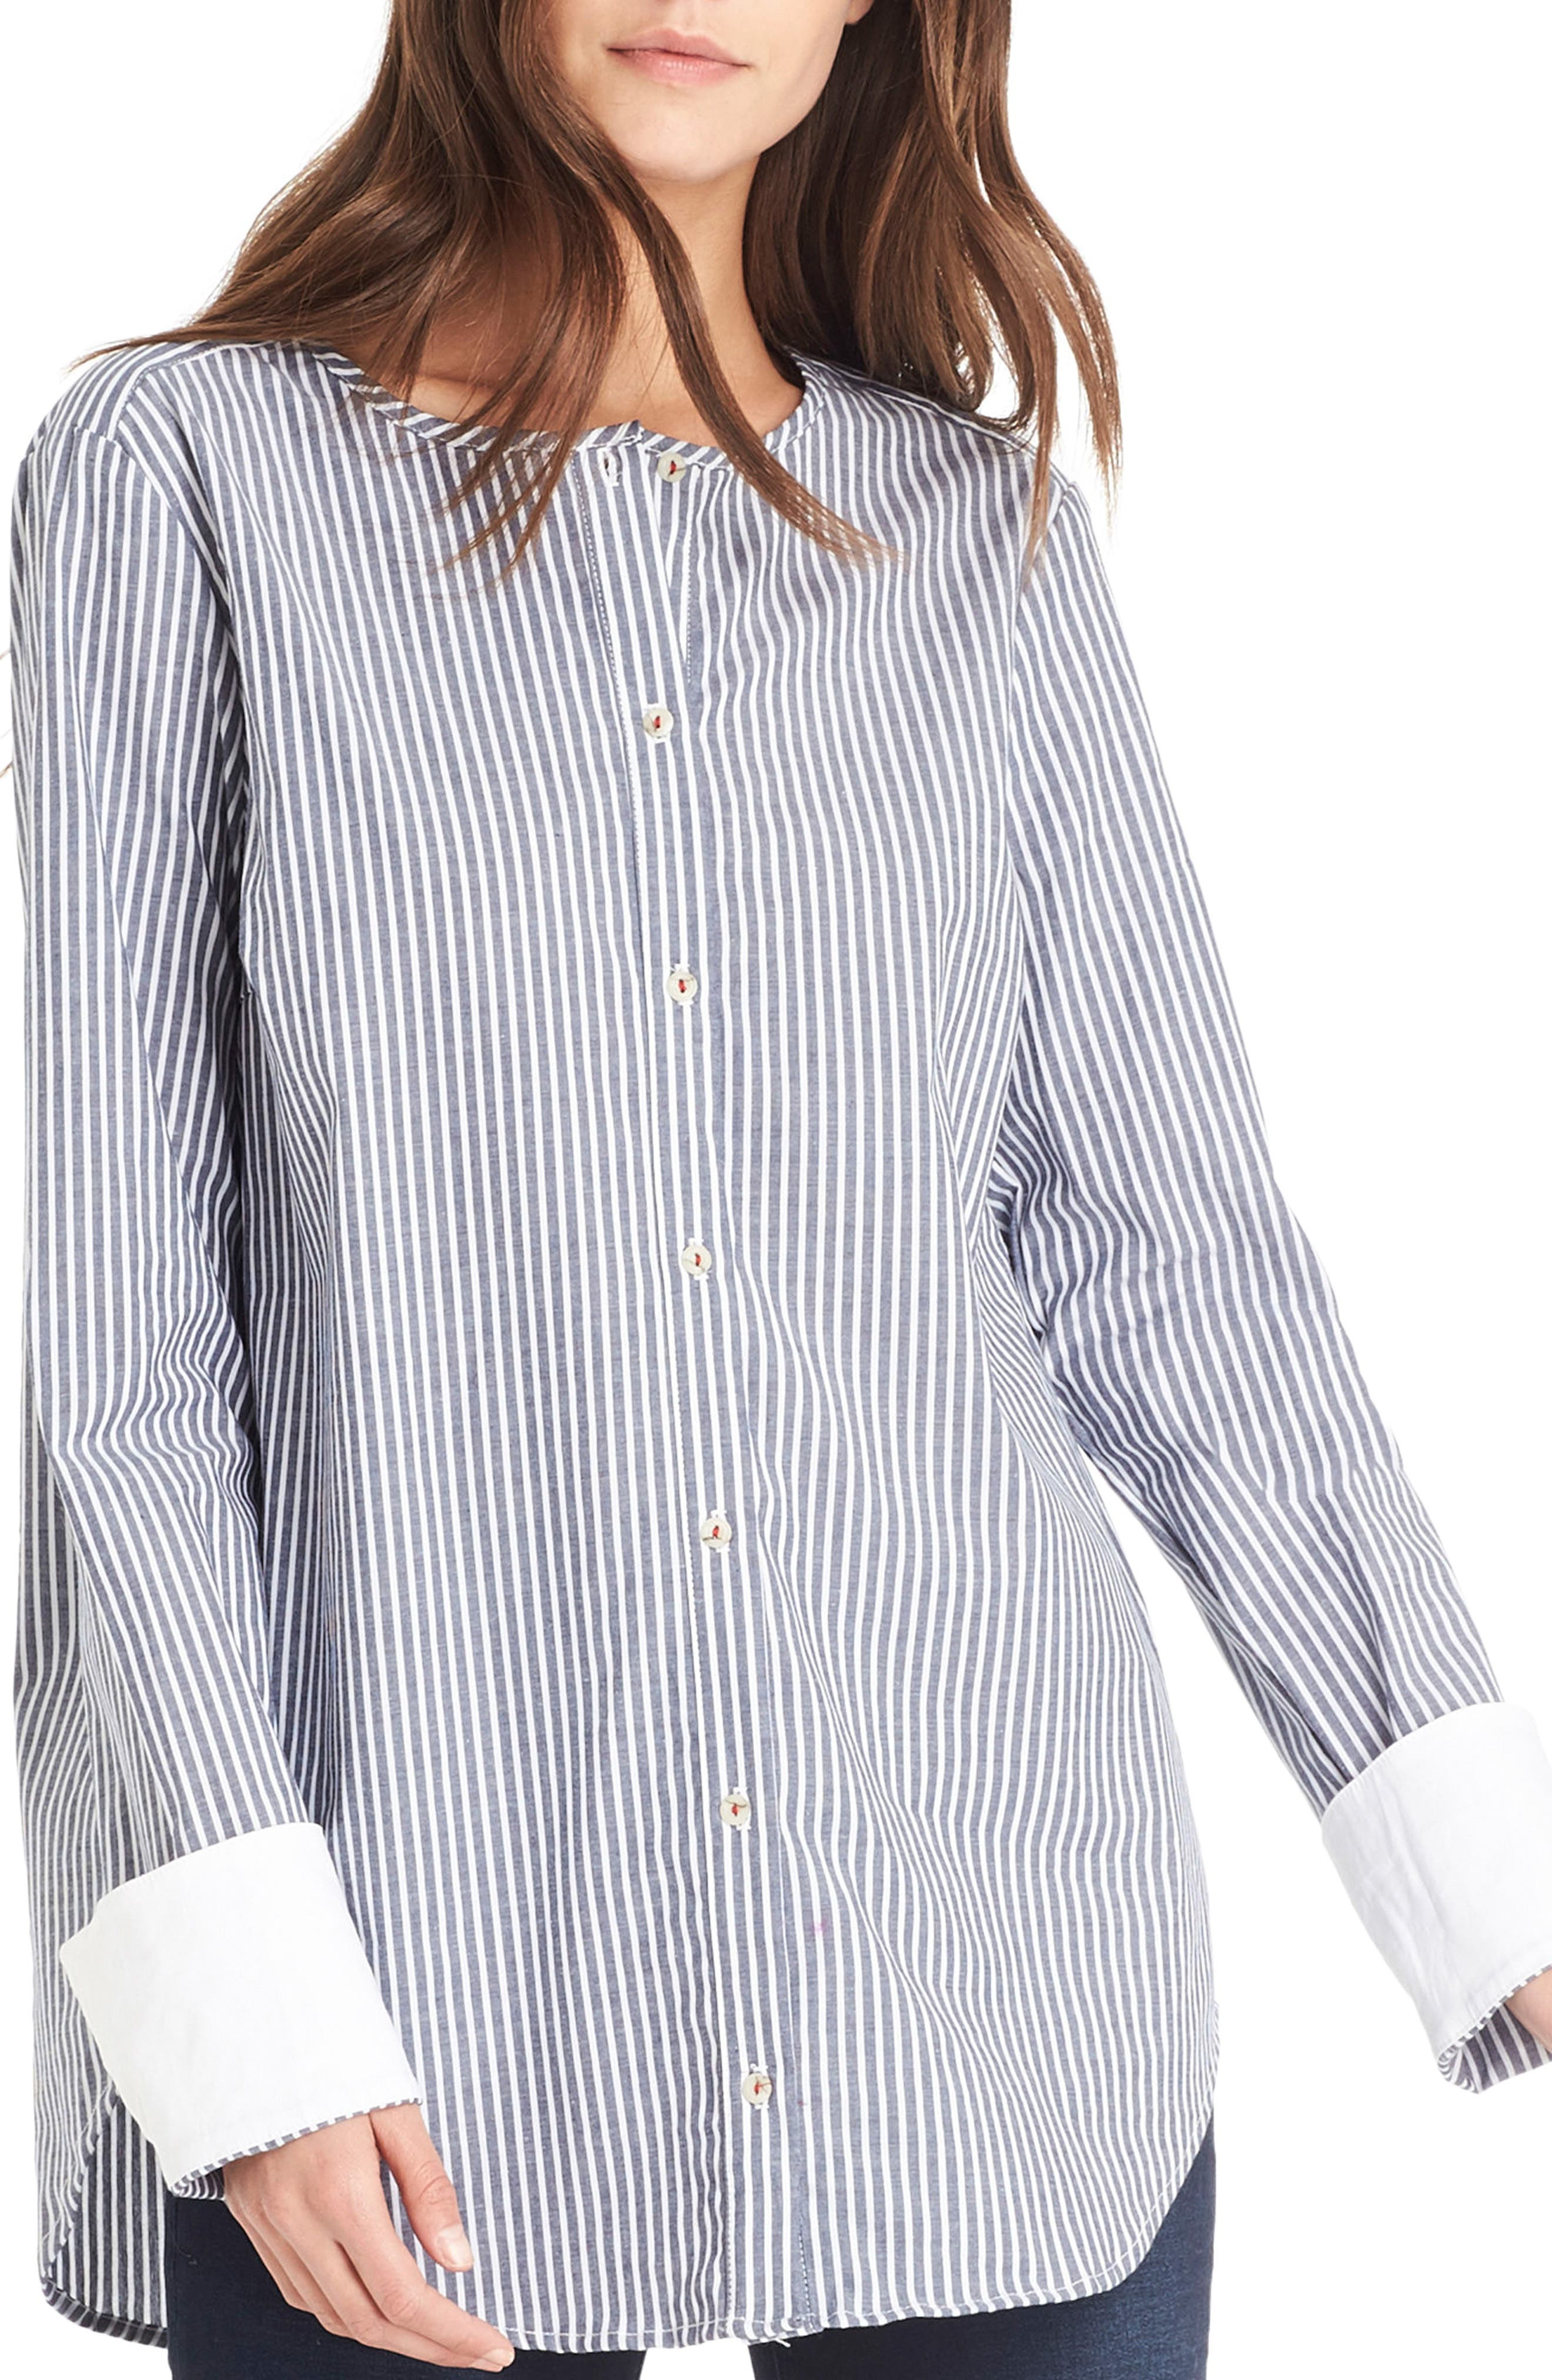 Contrast Cuff Shirt,                         Main,                         color, Noct/ White